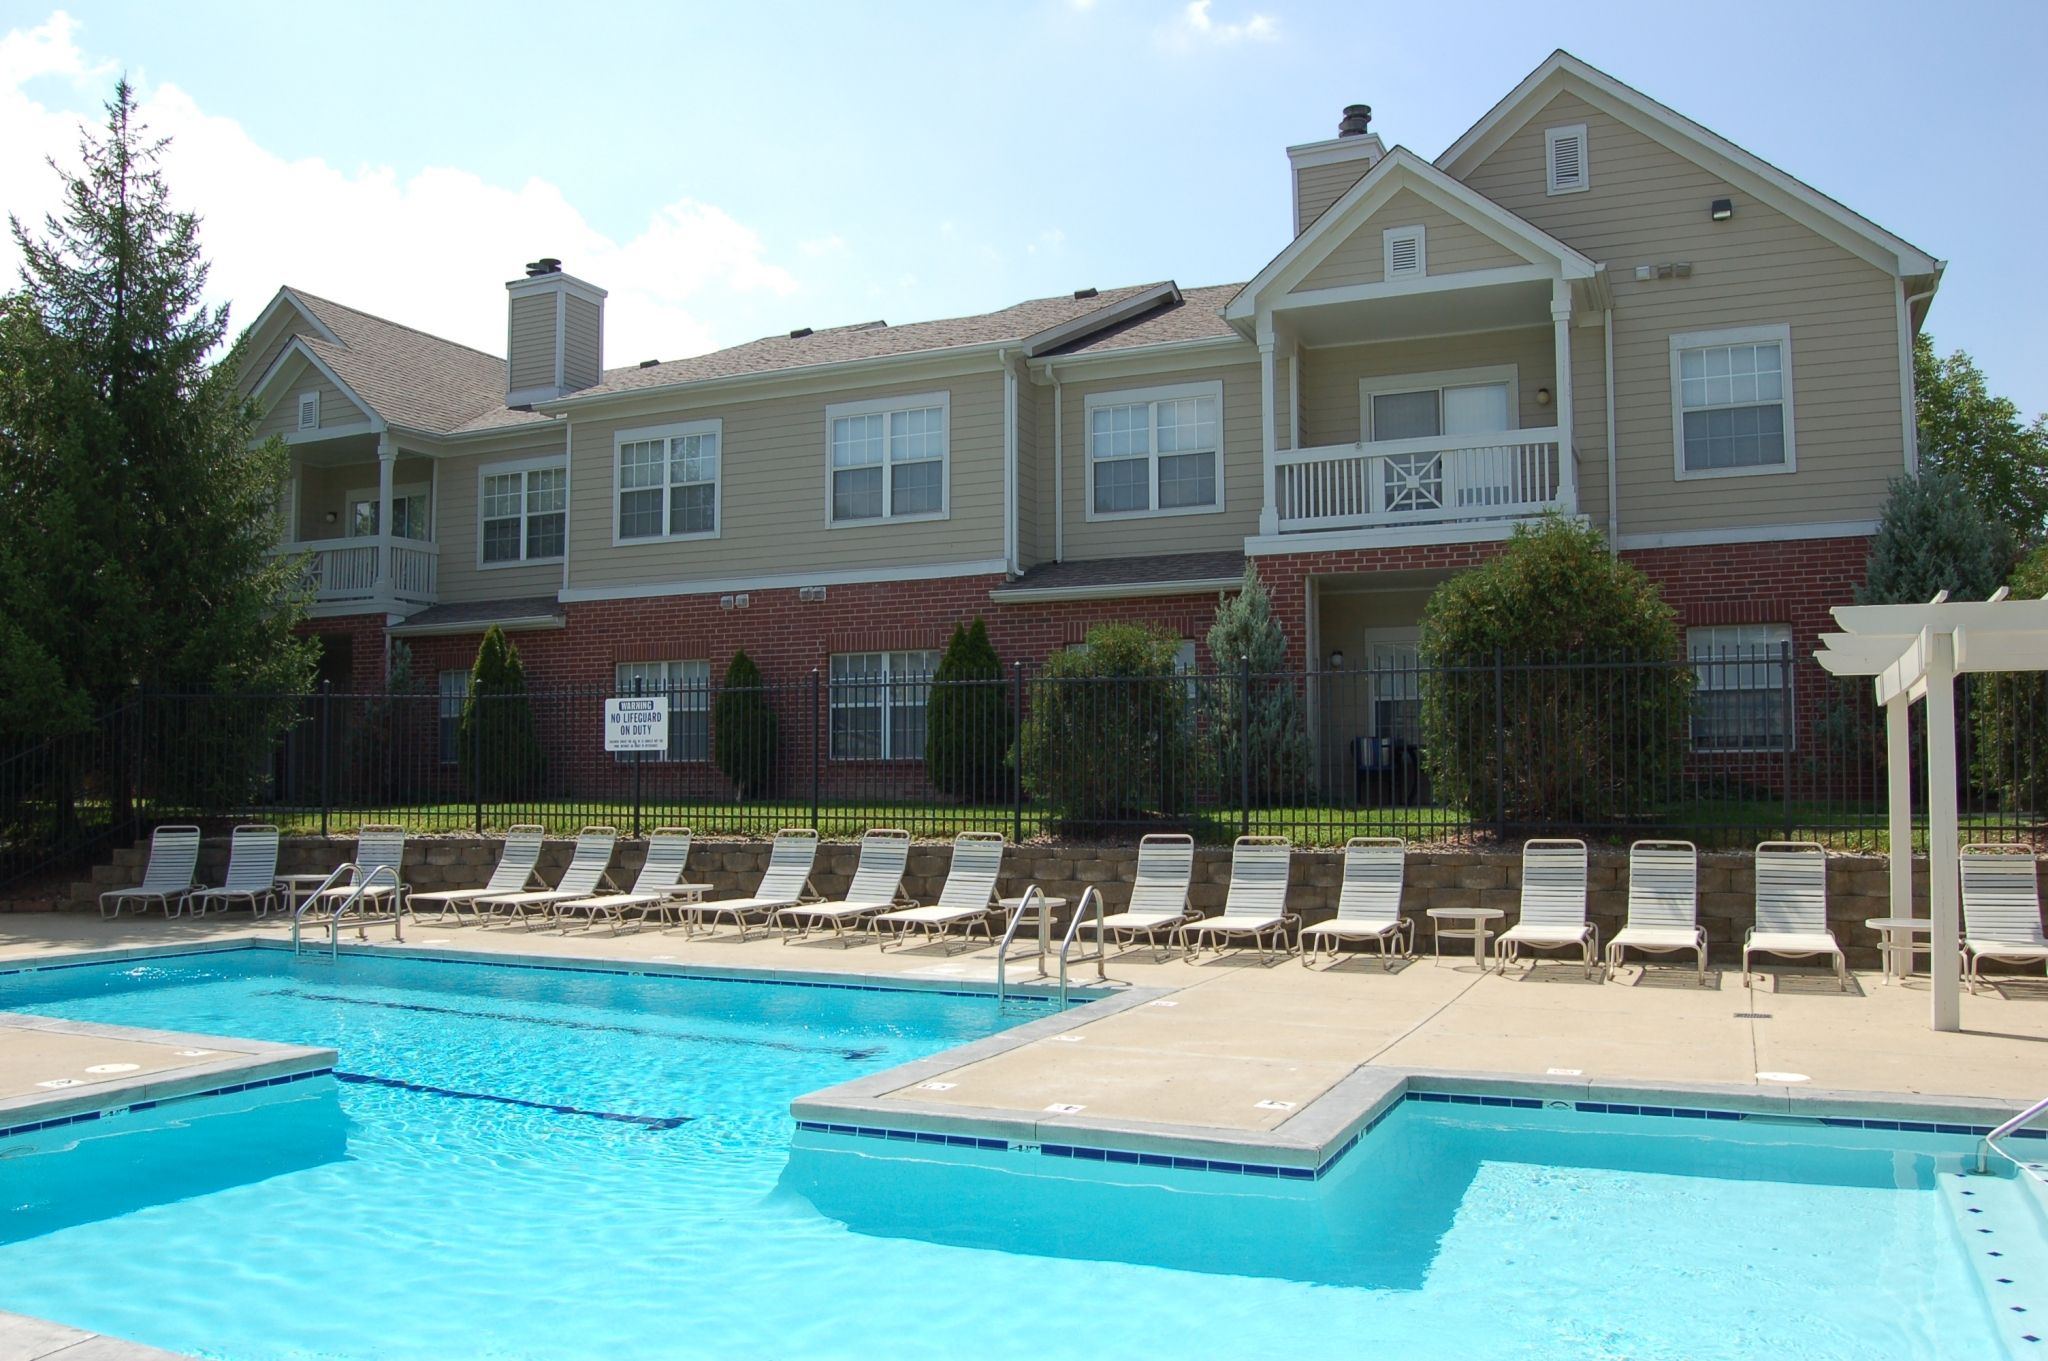 Apartments with pool and sundeck in Indianapolis. The